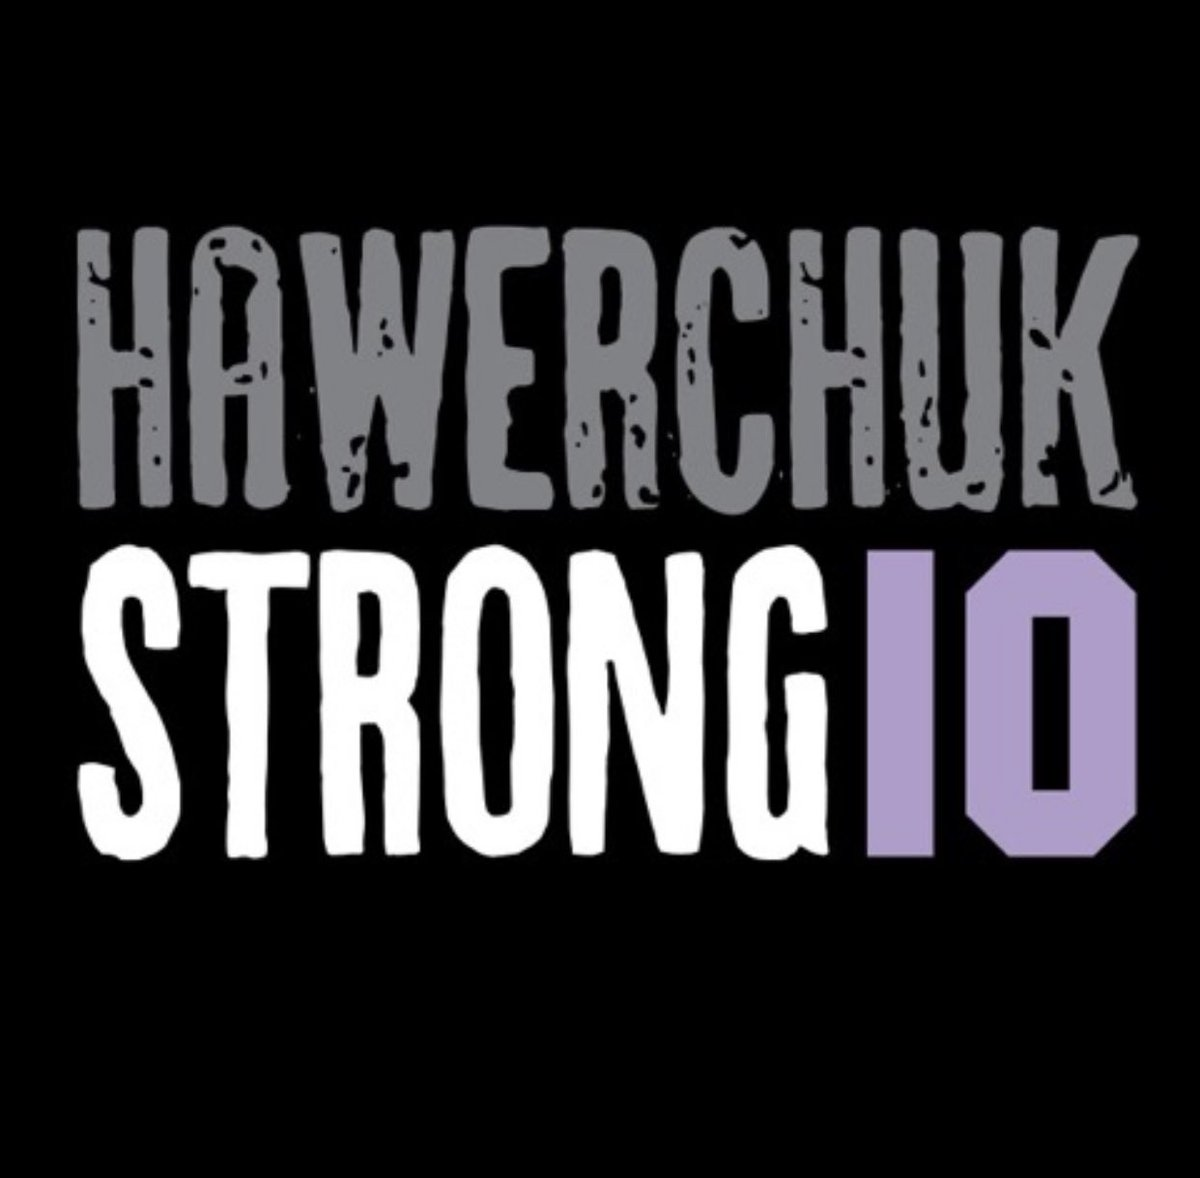 Sending love, support and prayers to Dale and his family. Stay strong my friend. #HawerchukStrong https://t.co/MOwdbuRmmt